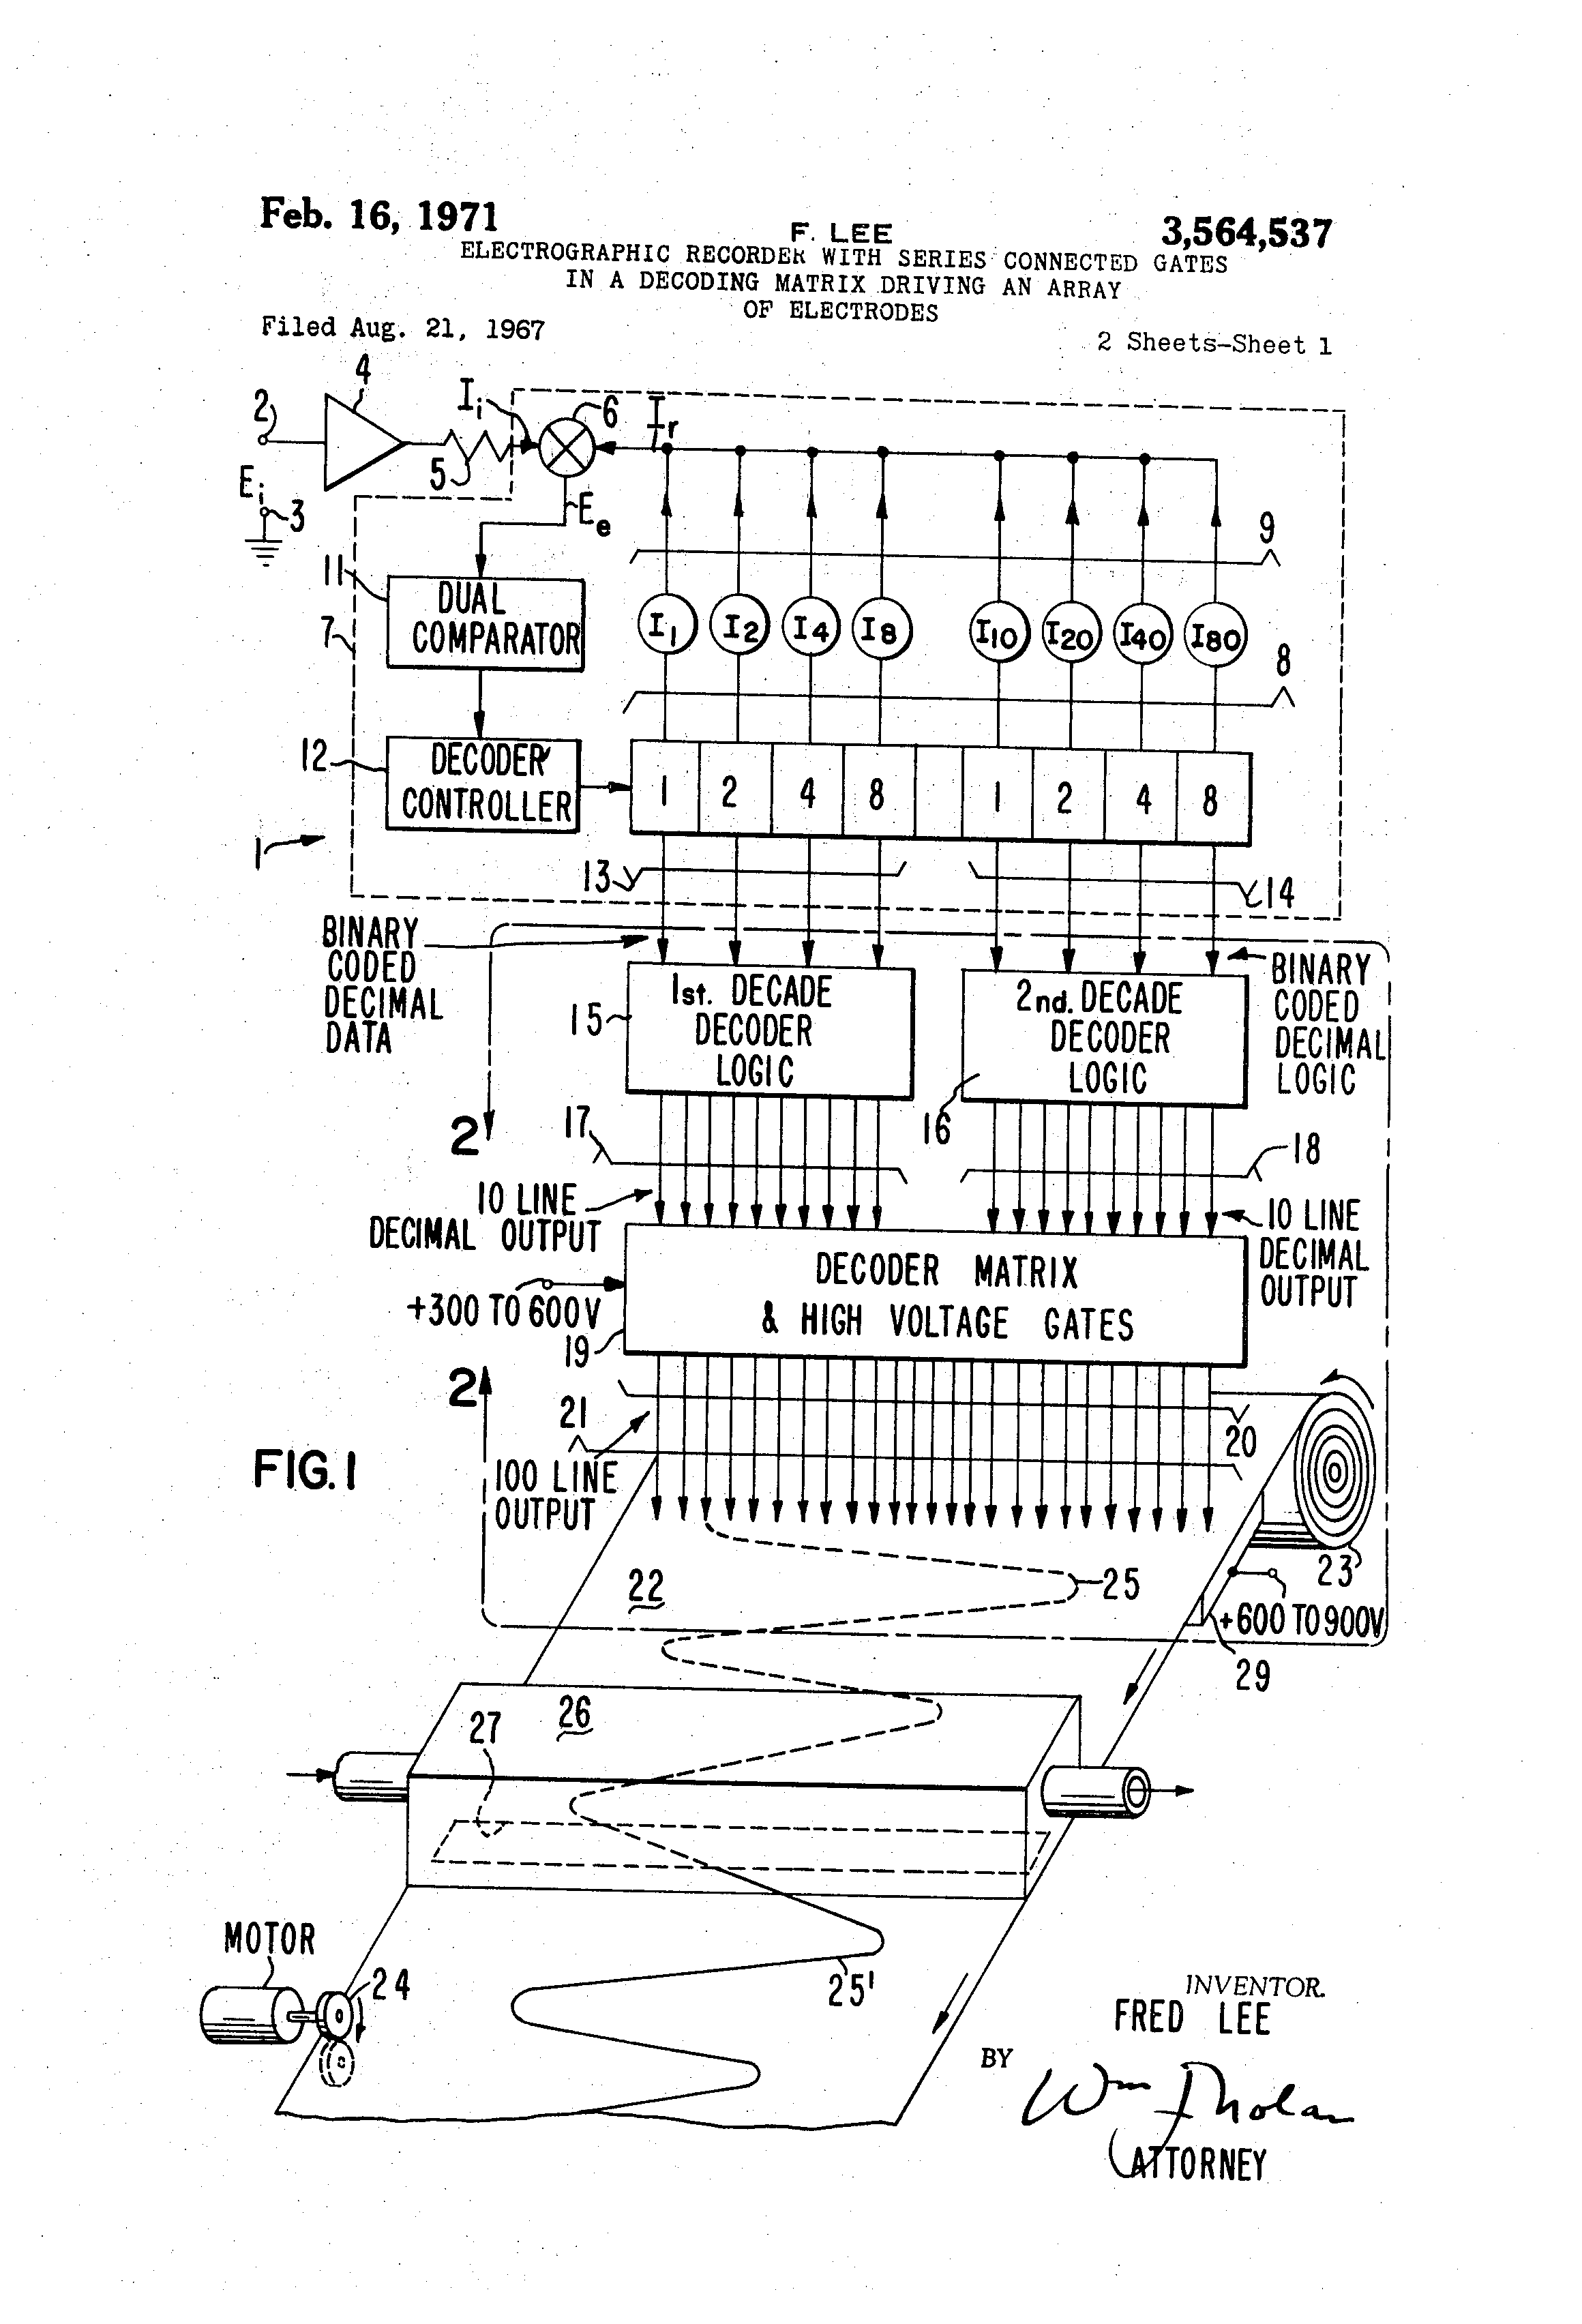 Patent Us3564537 Electrographic Recorder With Series Connected Binary Coded Decimal Converter Negative Logic Drawing